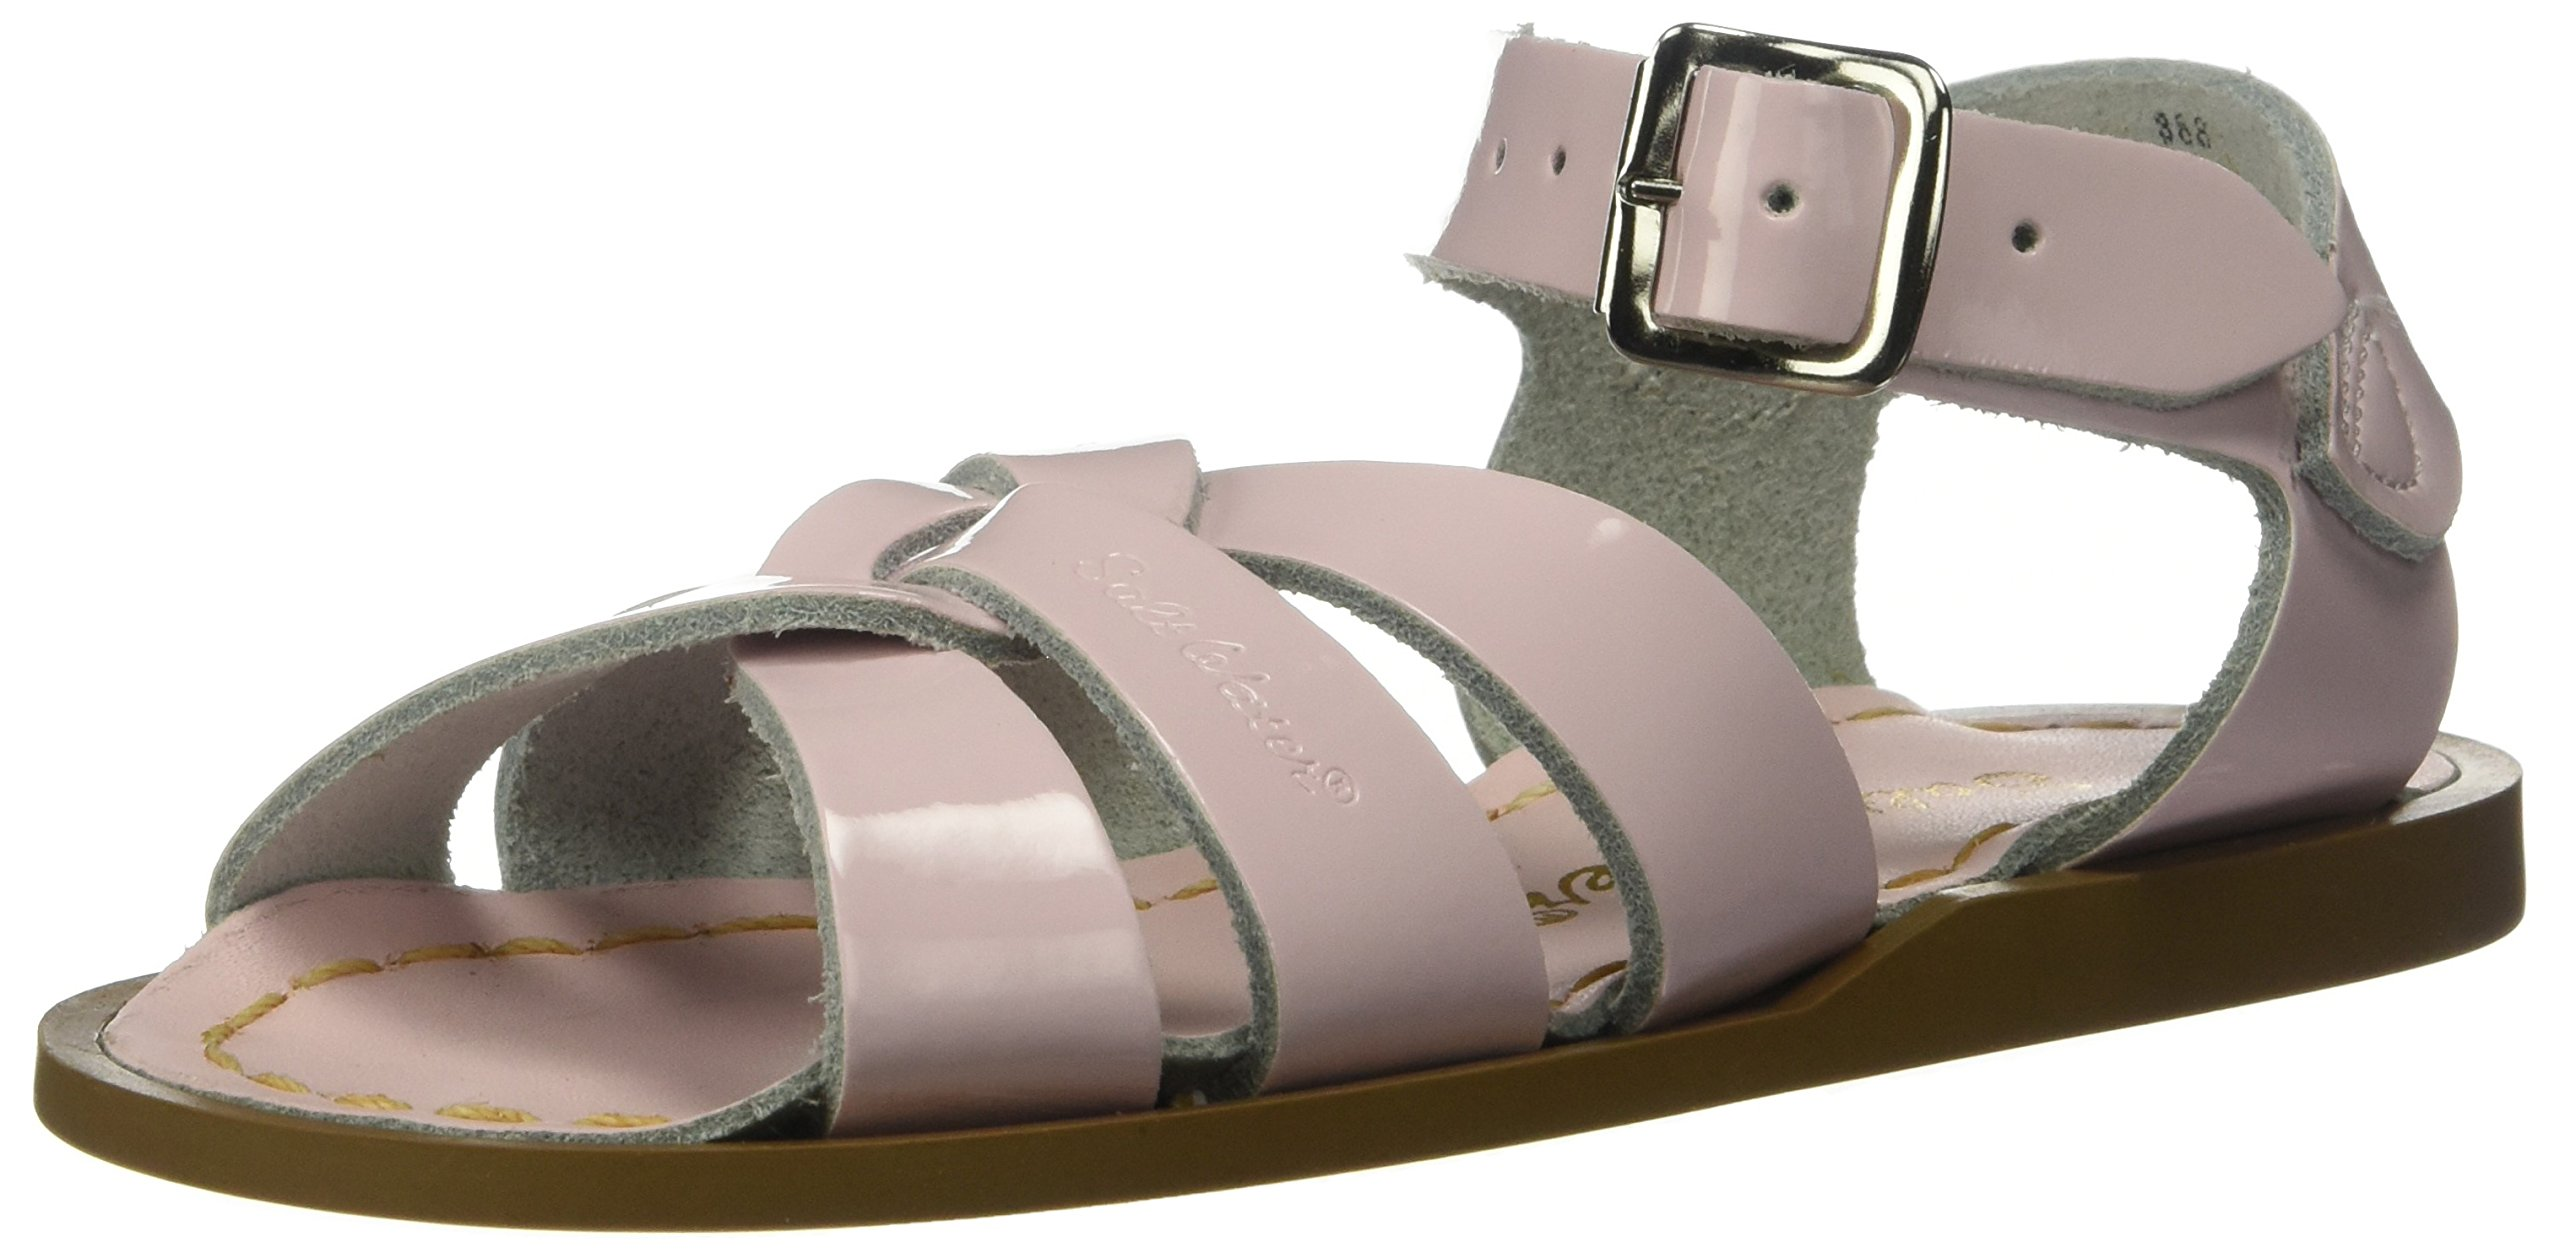 4034a51baf7 Galleon - Saltwater By Hoy Girls Sun-San Surfer Flat Sandal  (Infant Toddler Little Kid)